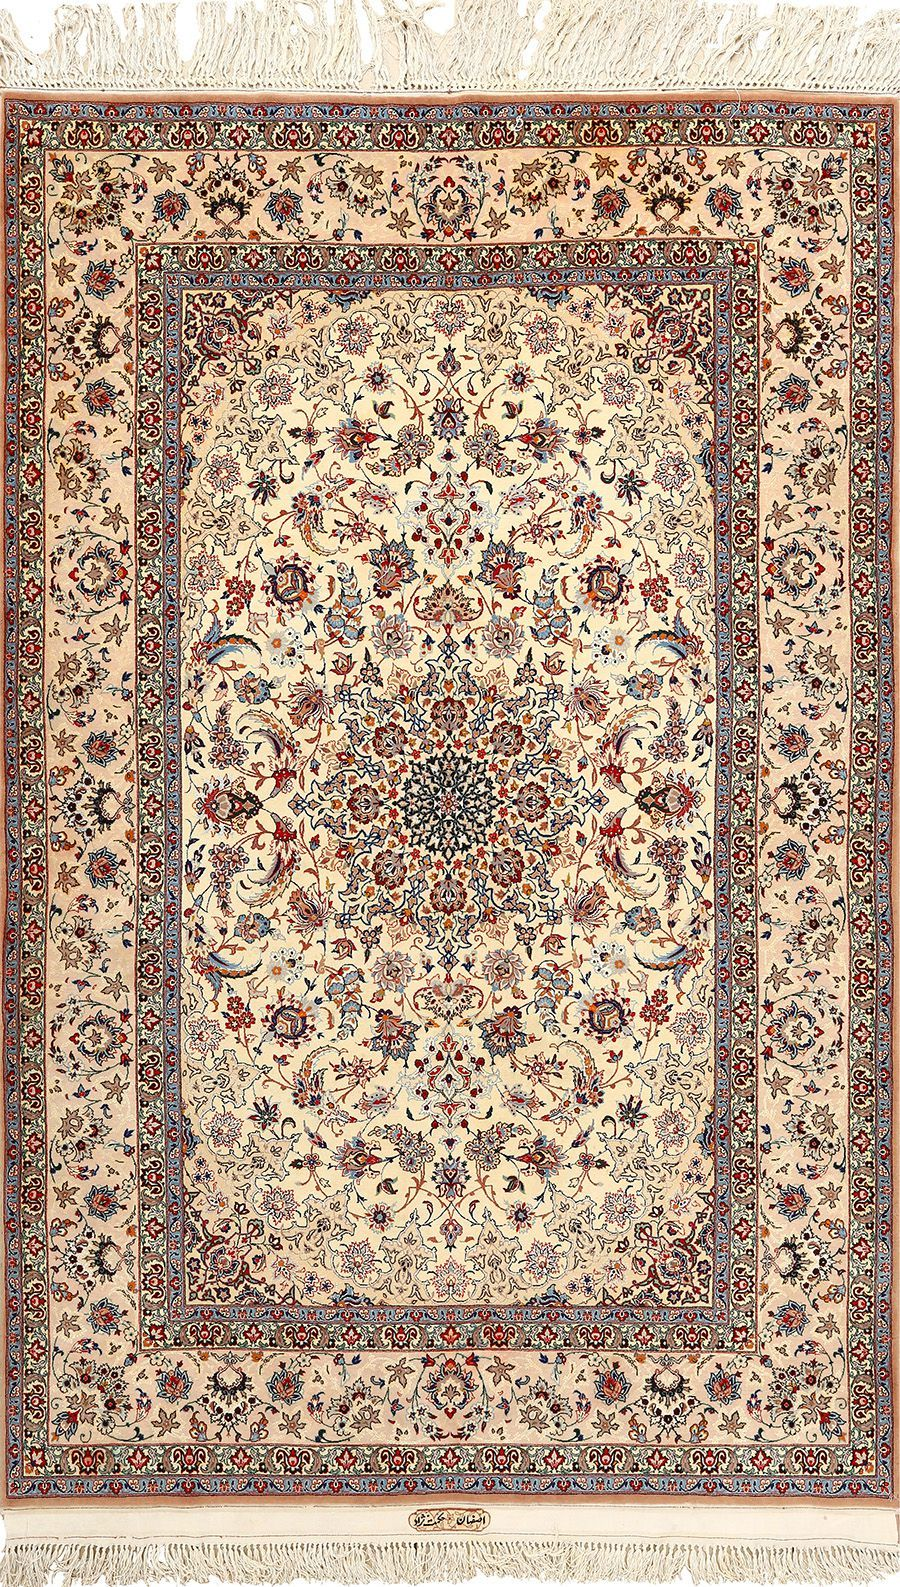 Click Here To View This Beautiful Vintage Ivory Background Isfahan Persian Rug 51172 Available For Sale At Nazmiyal Antiqu Persian Rug Vintage Persian Rug Rugs